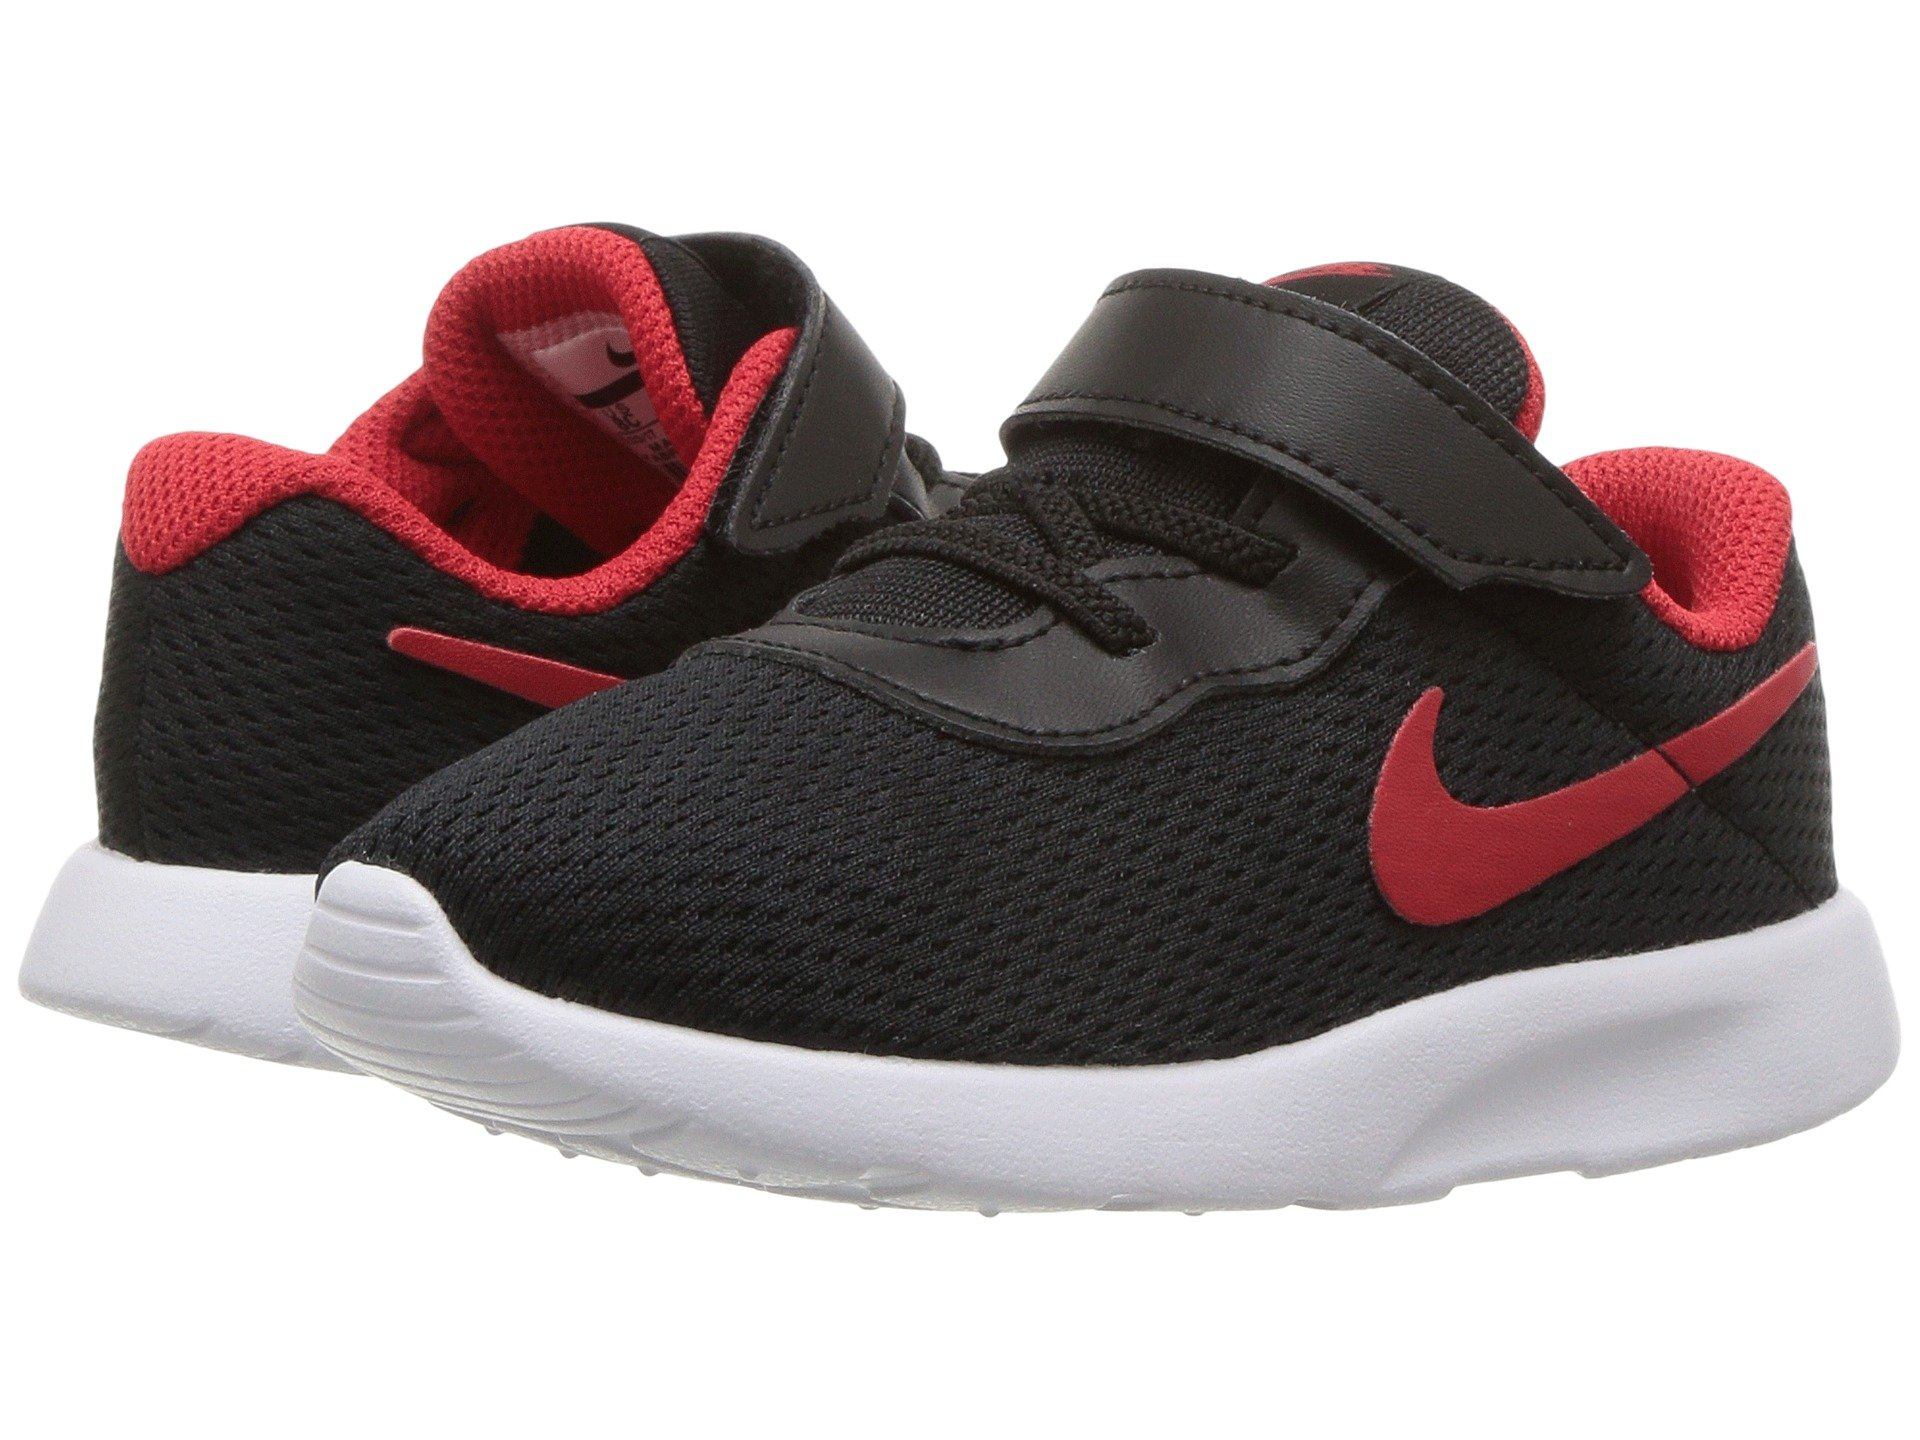 Nike Kids Tanjun (Infant/Toddler) at Zappos.com